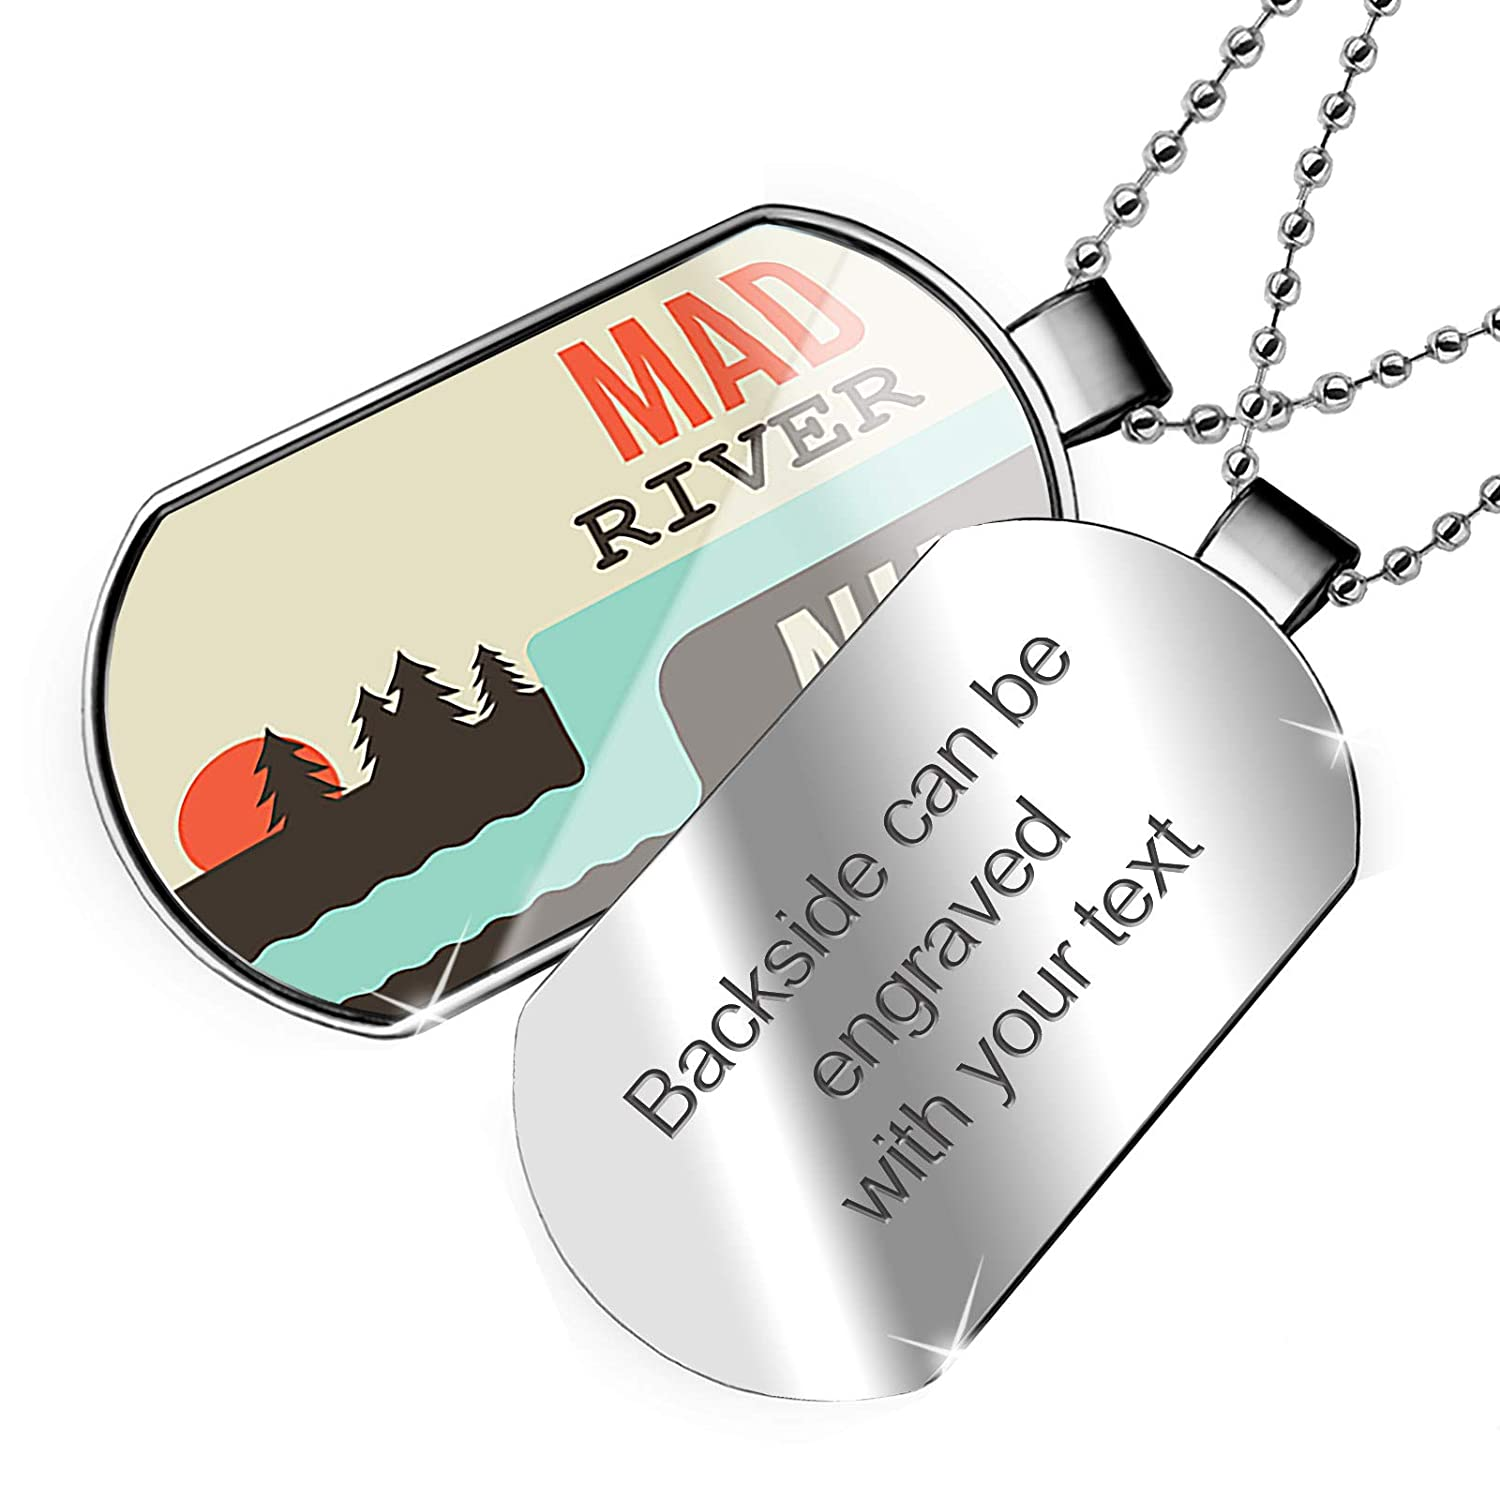 New Hampshire Dogtag Necklace NEONBLOND Personalized Name Engraved USA Rivers Mad River